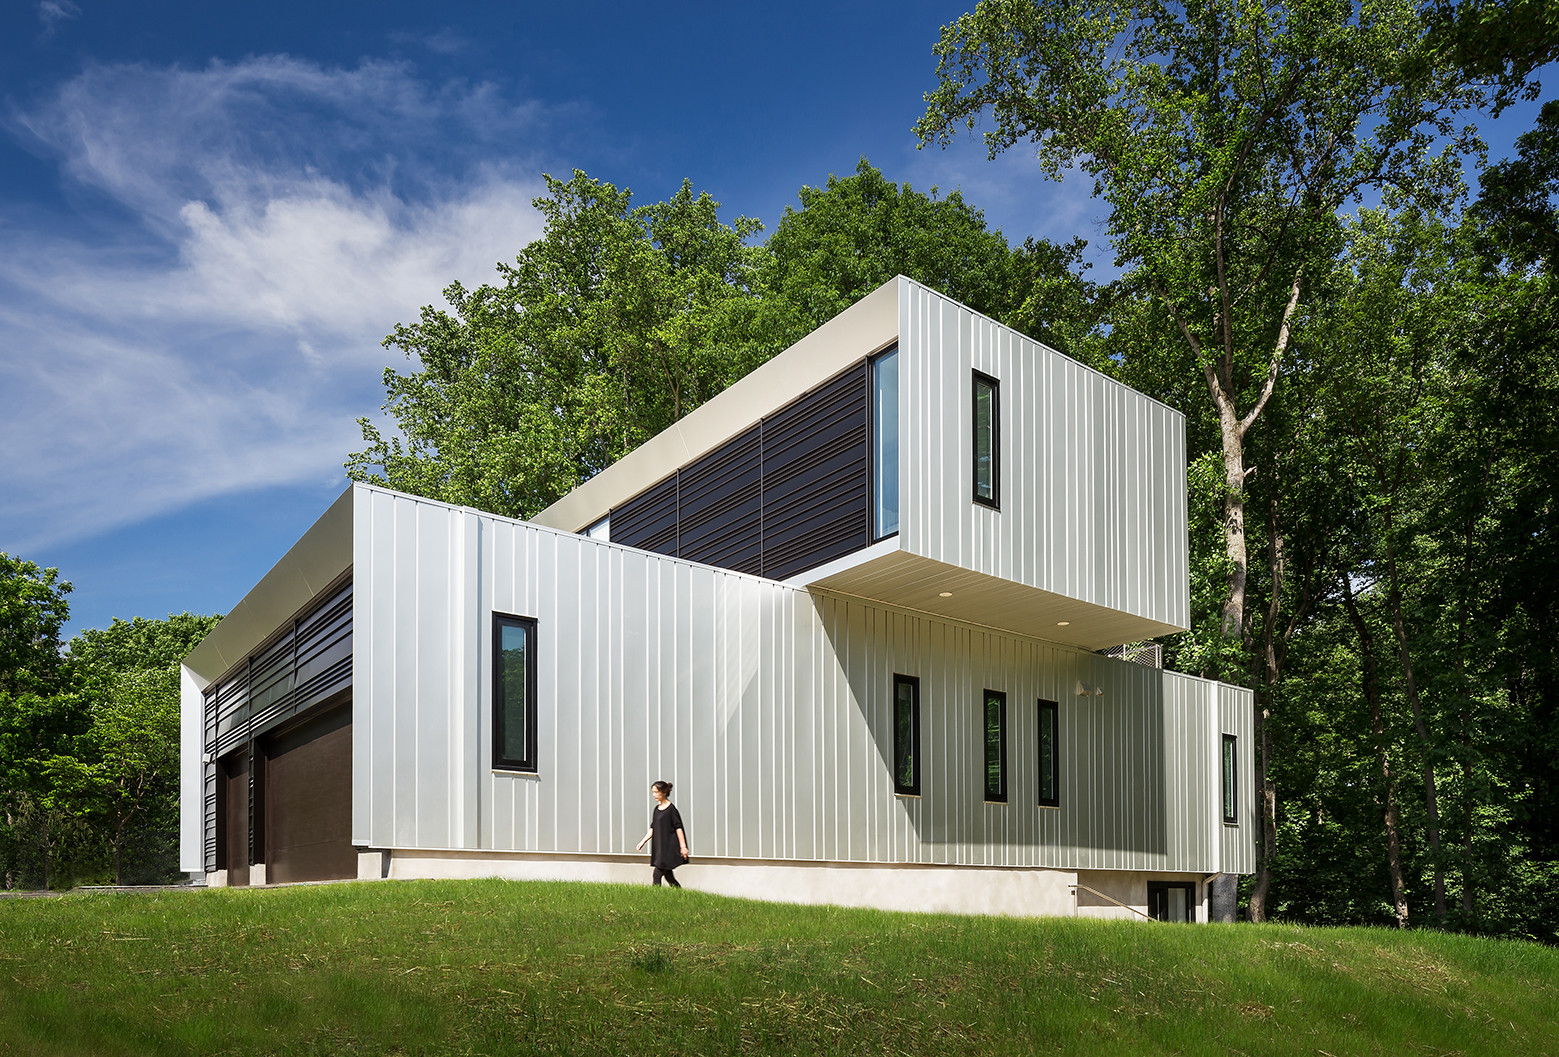 Bridge House / Höweler + Yoon Architecture, Courtesy of Höweler + Yoon Architecture, ©Jeff Wolfram